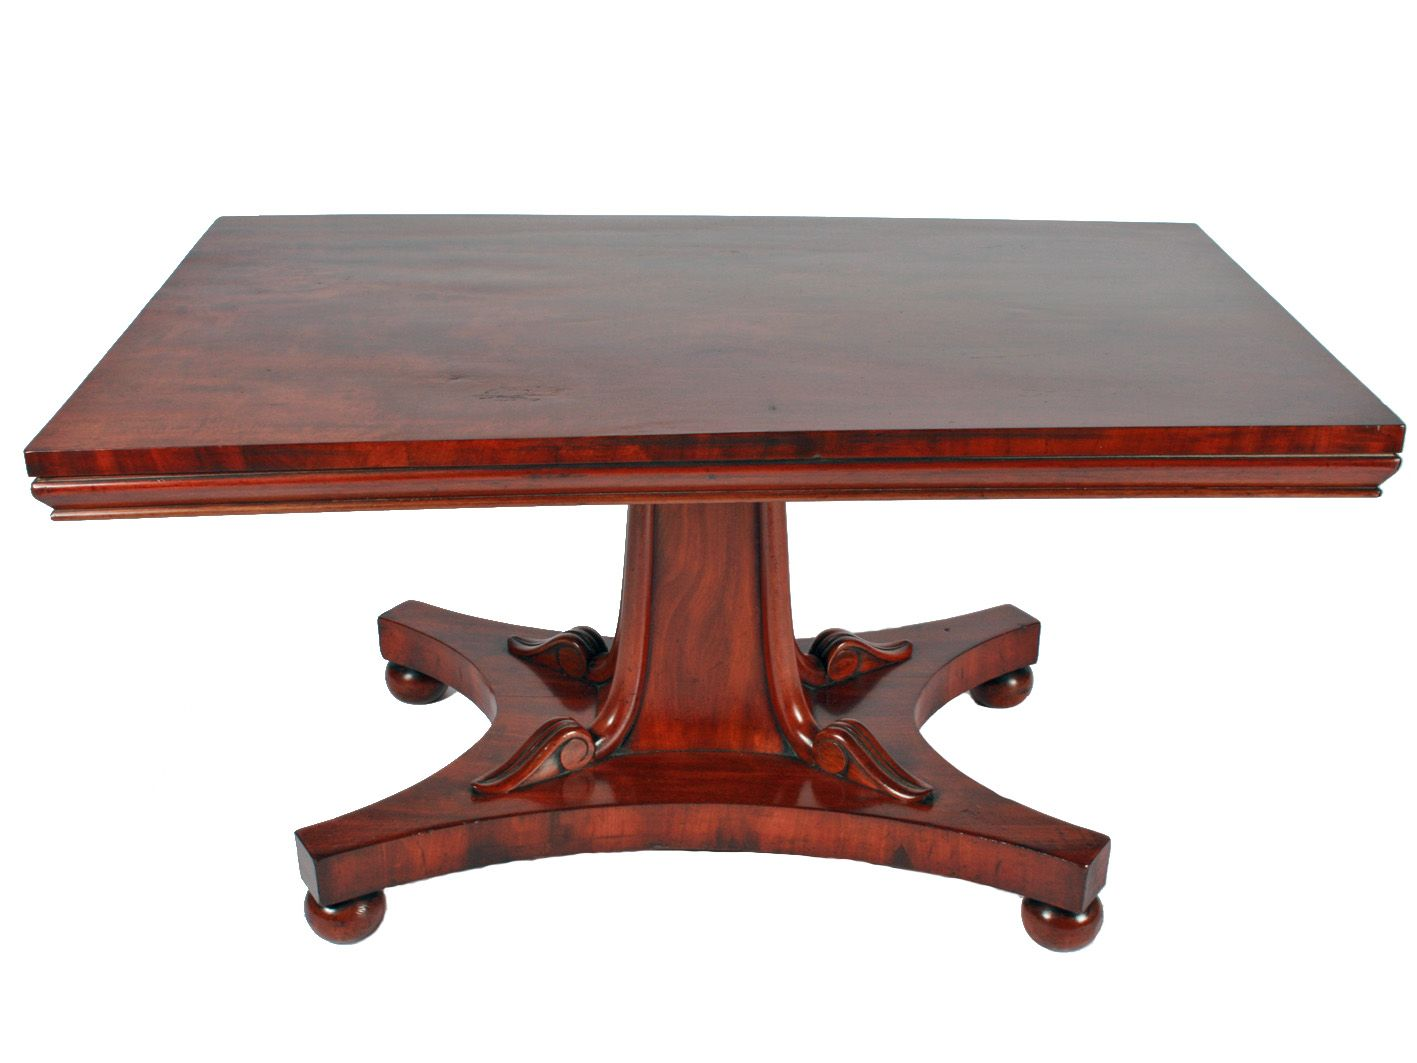 19th Century Mahogany Coffee Table | Old coffee tables ...